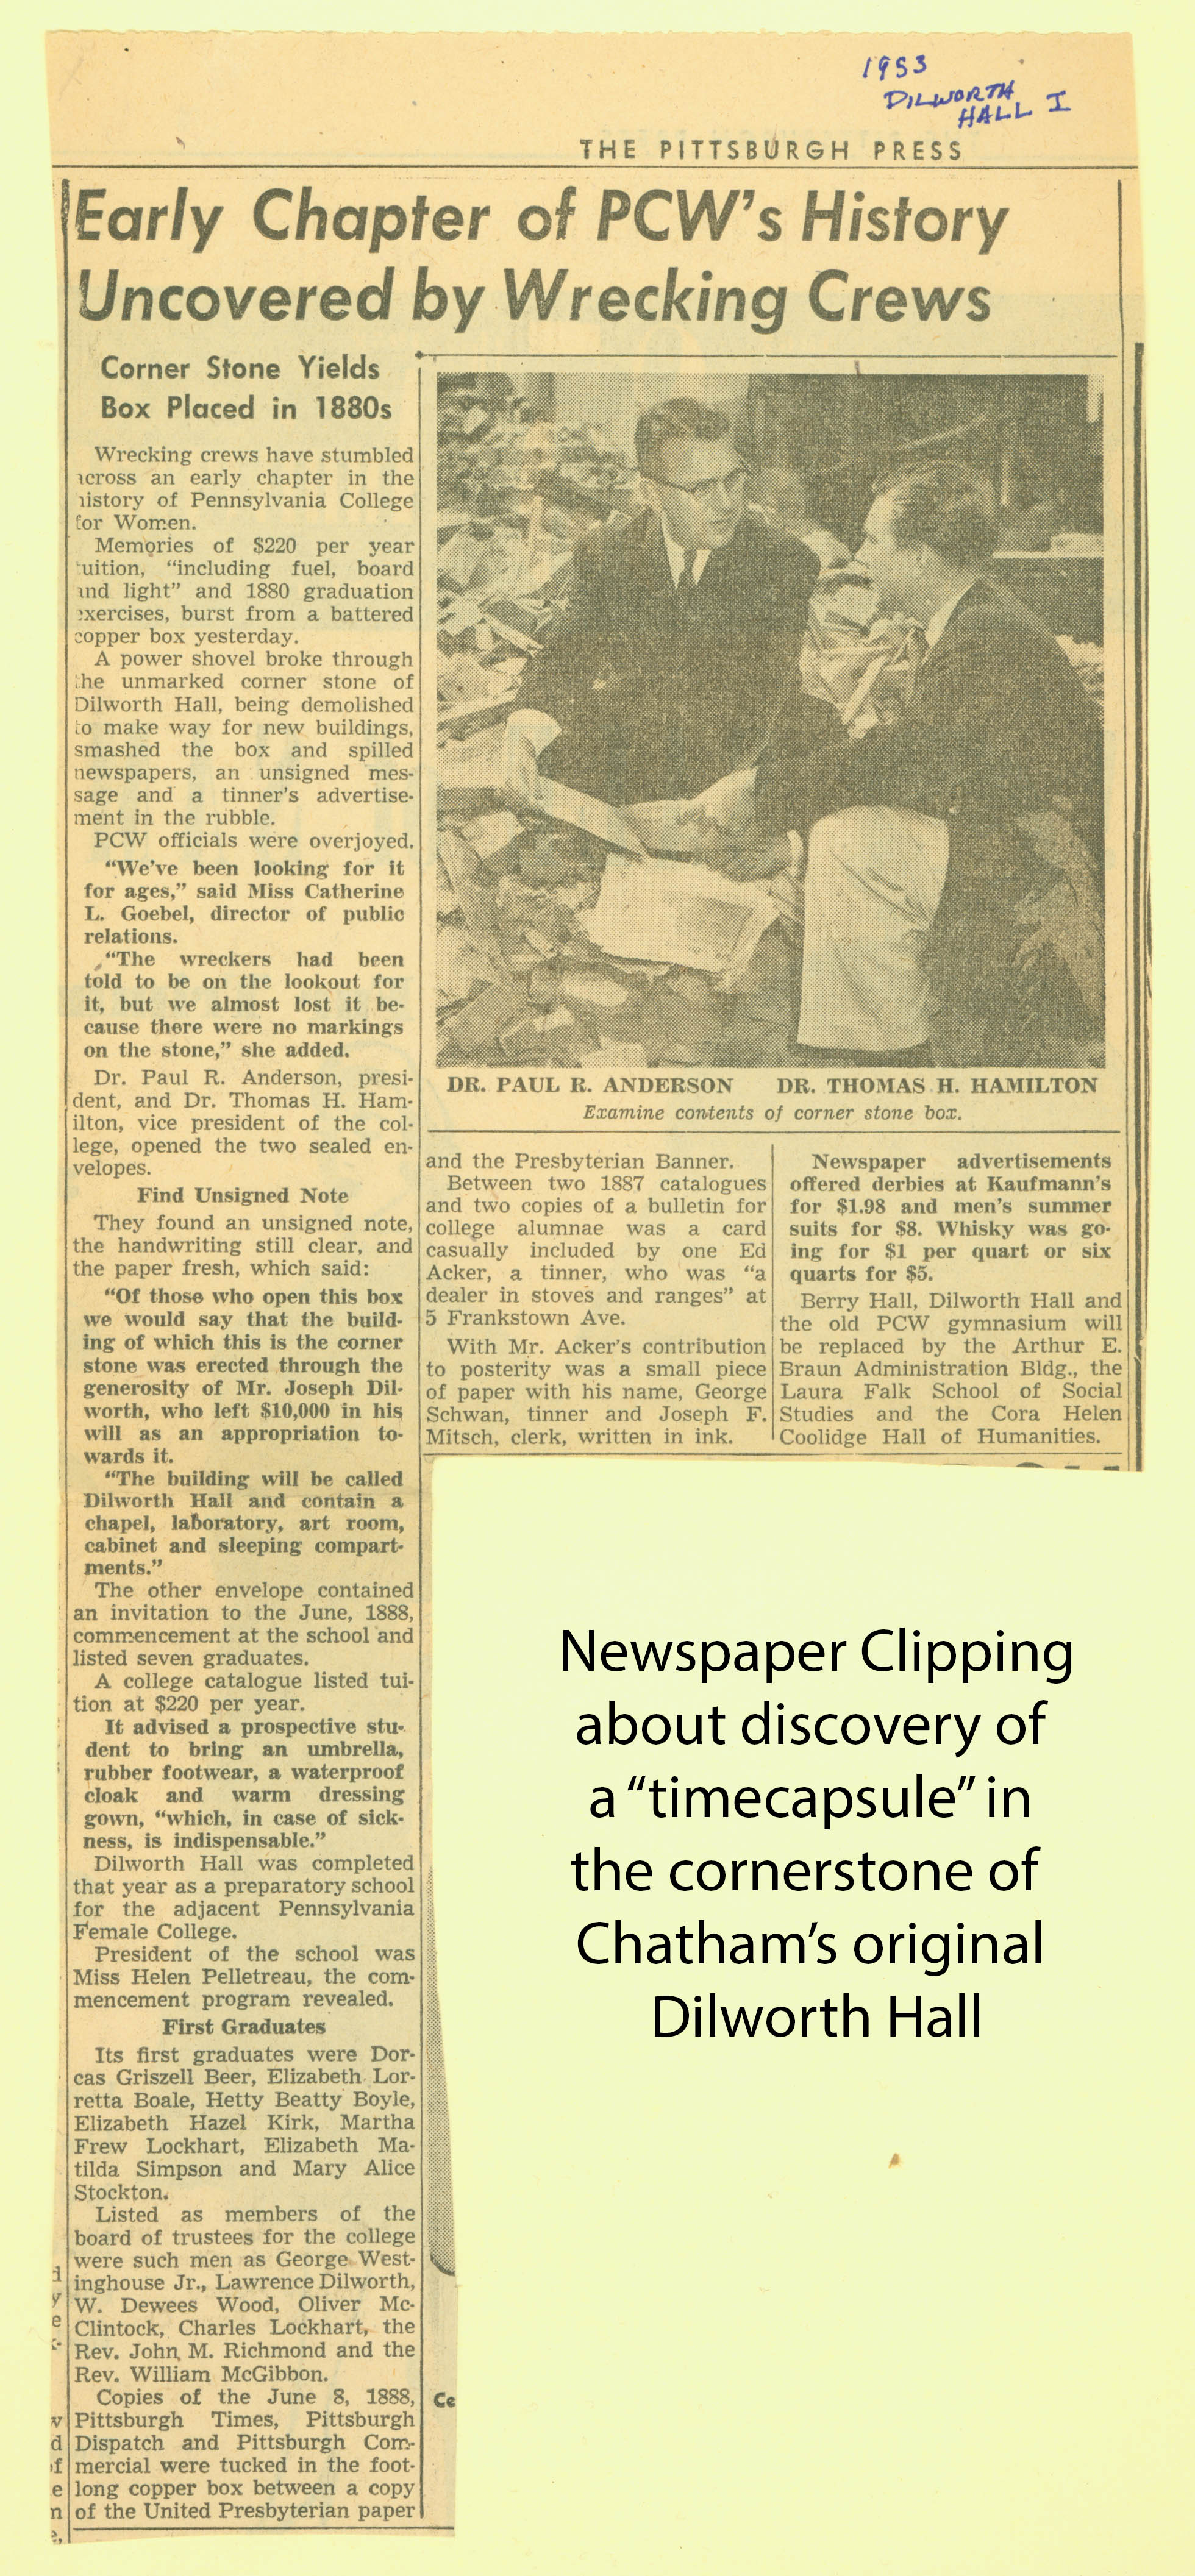 Newspaper clipping about PCW time capsule discovery